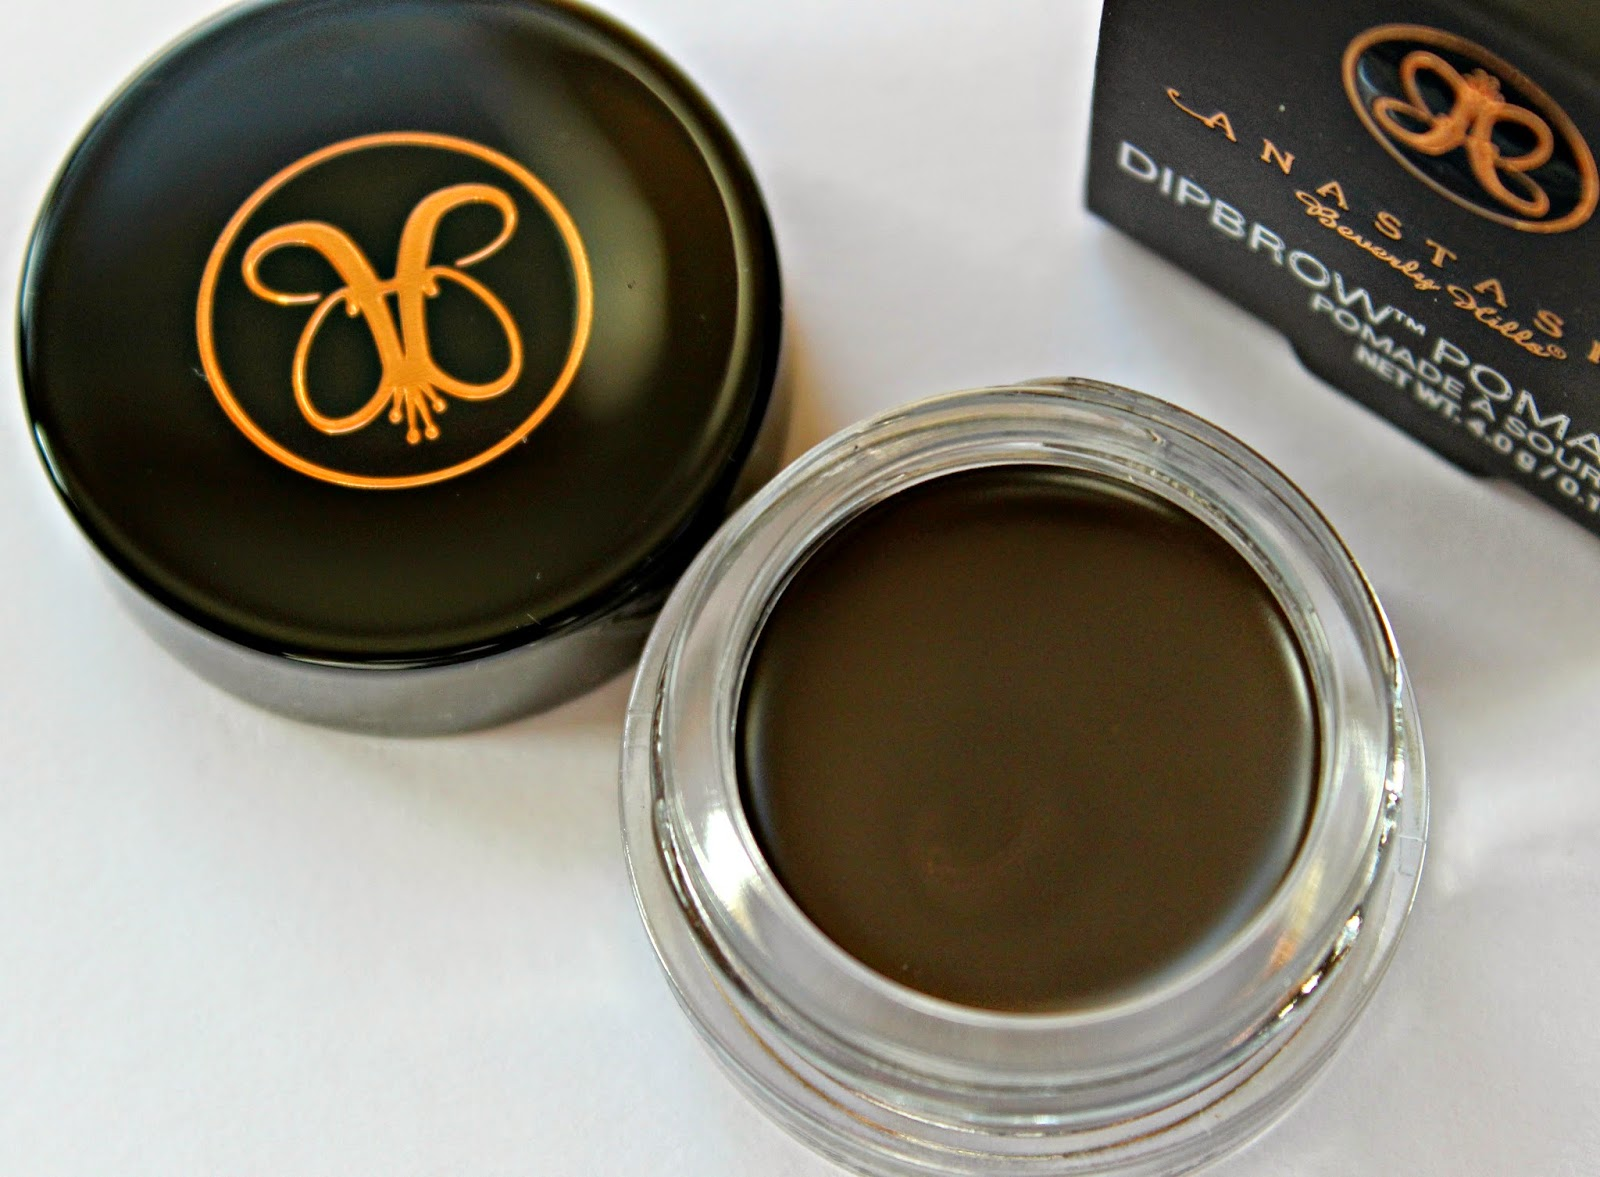 A picture of the Anastasia Dipbrow Pomade in Ebony